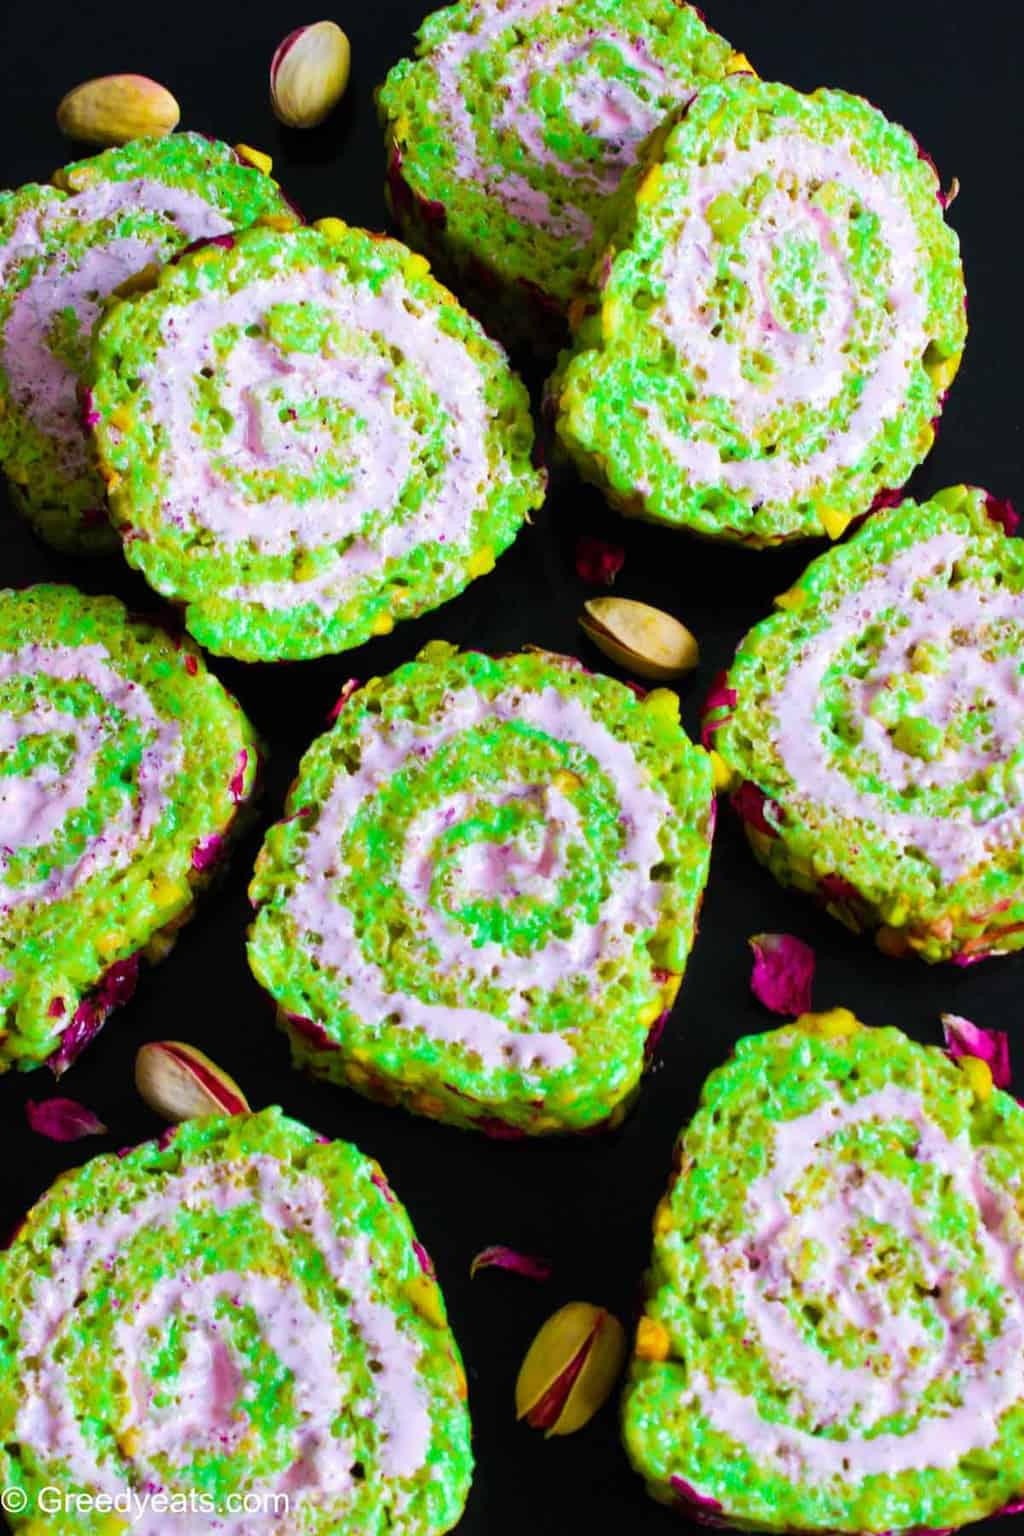 Rice Krispie Roll ups flavored with pistachios and rose marshmallow fluff.